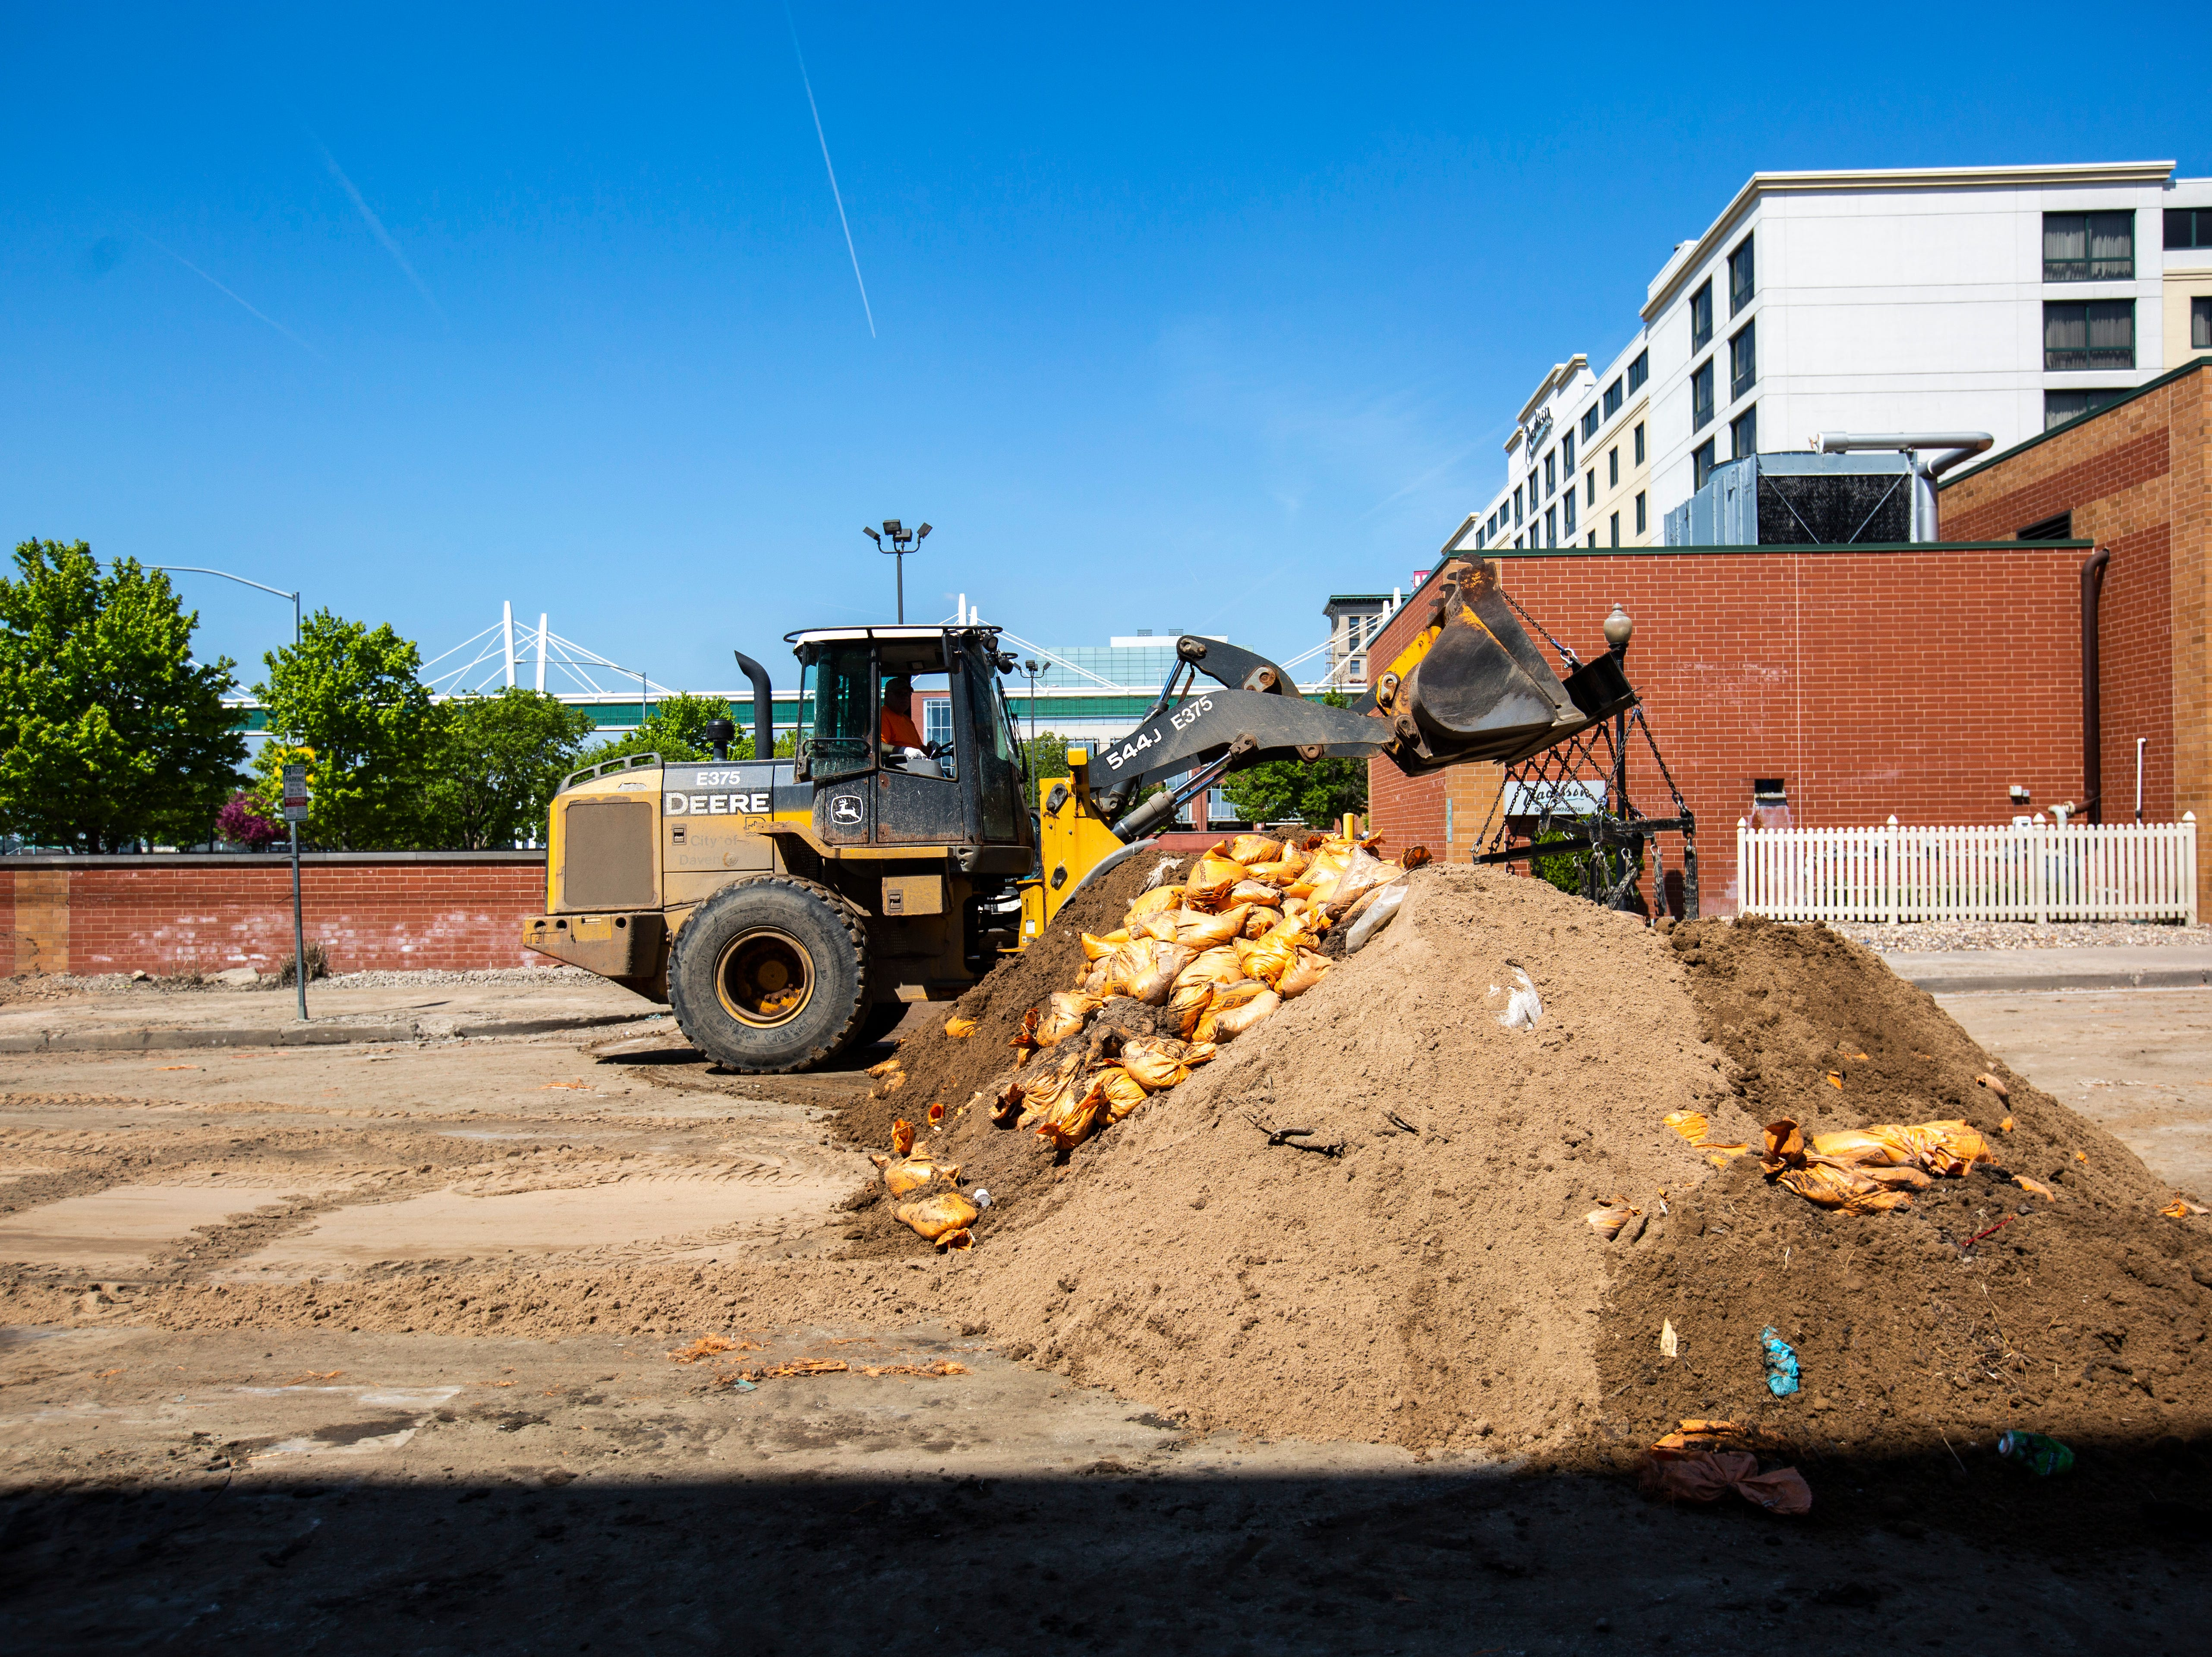 A City of Davenport crew removes a HESCO barrier and sandbags, Wednesday, May 15, 2019, in downtown Davenport, Iowa.